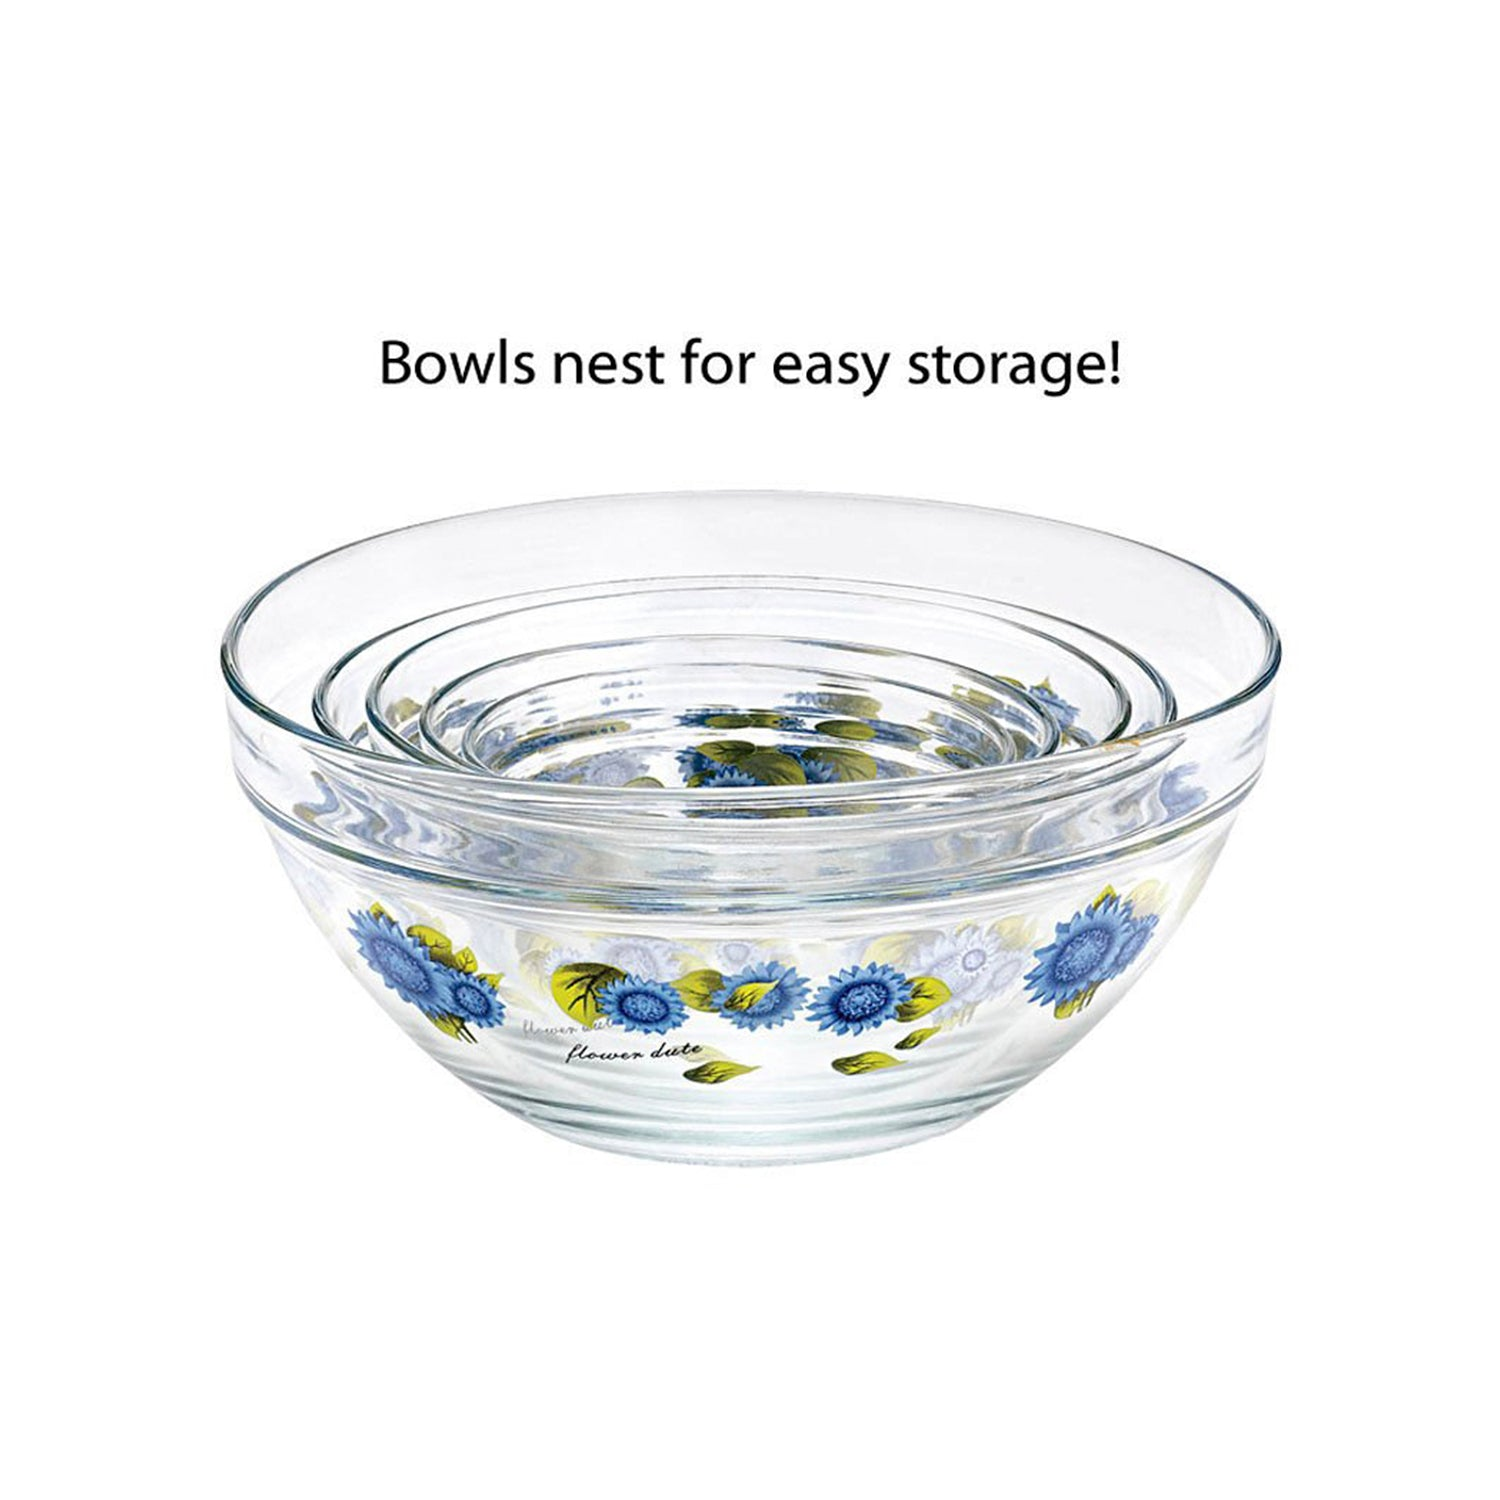 10 Pcs Glass Lunch Bowls Food Storage Containers Set With Lids & Flower Design